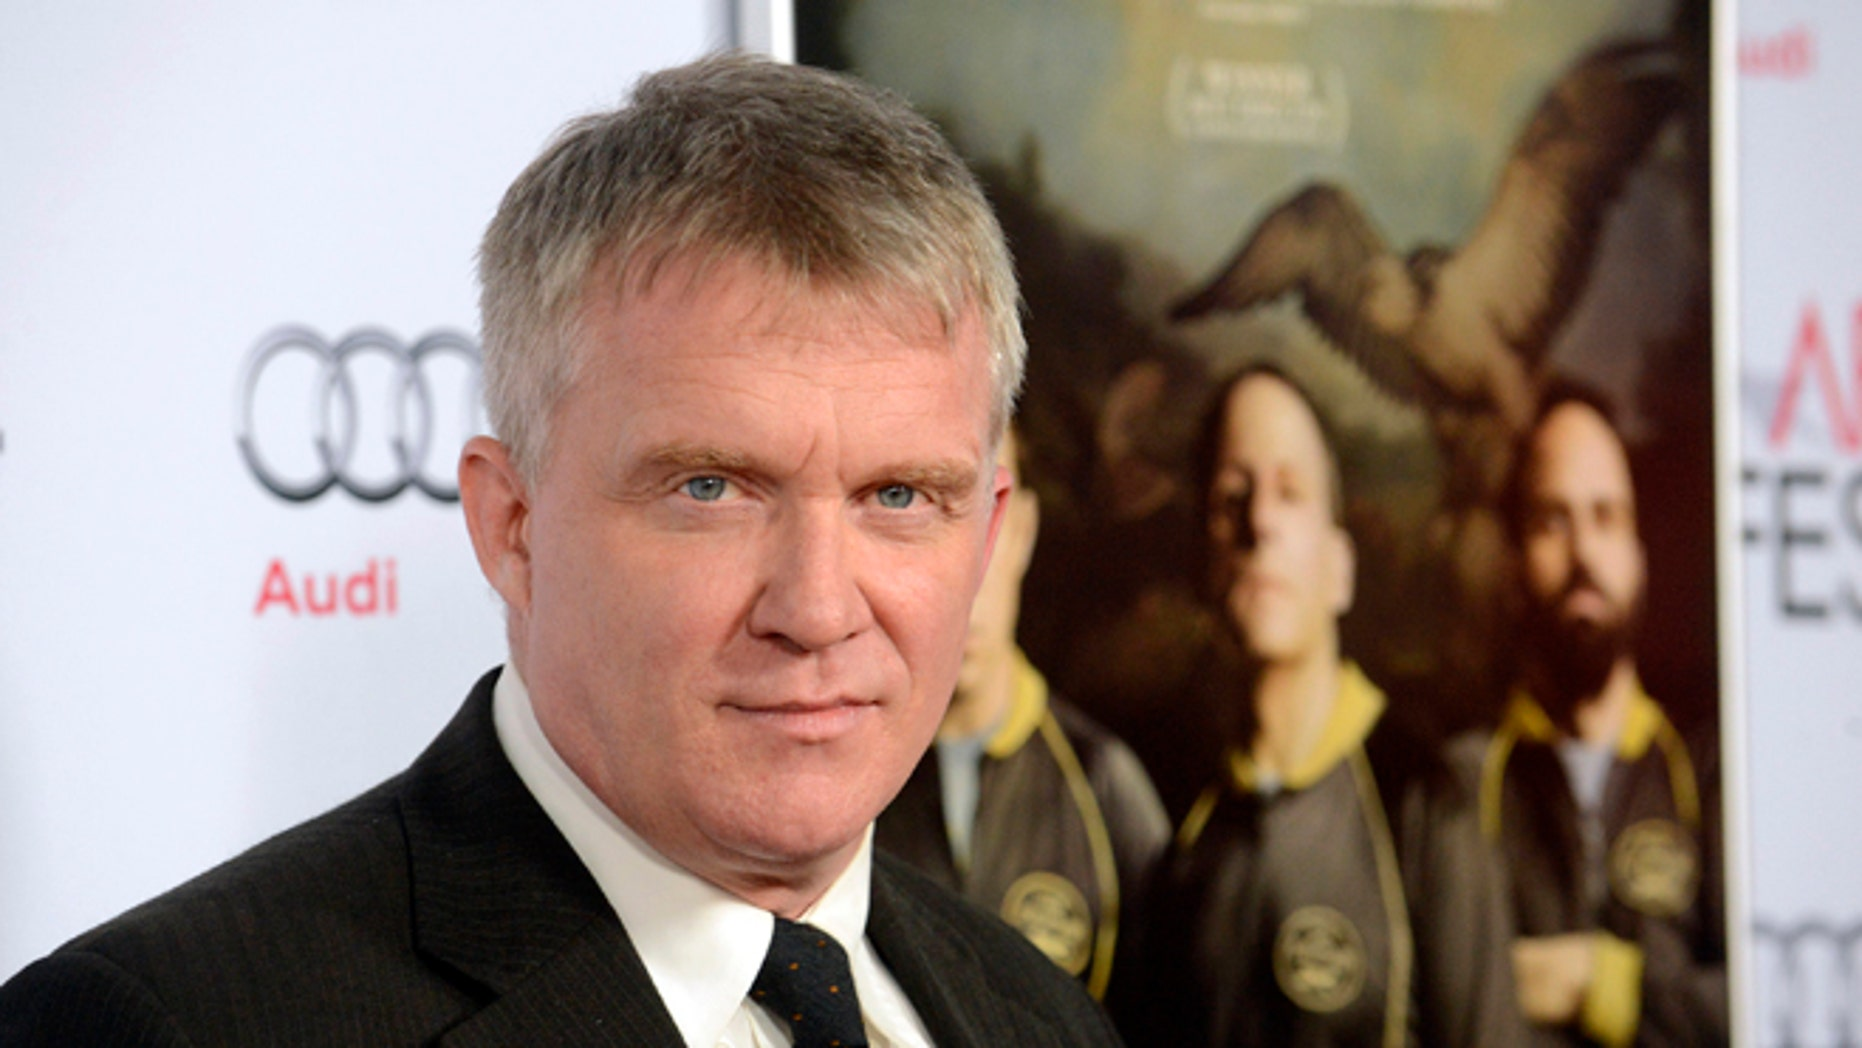 Actor Anthony Michael Hall is facing felony assault charges for an alleged confrontation with a neighbor.